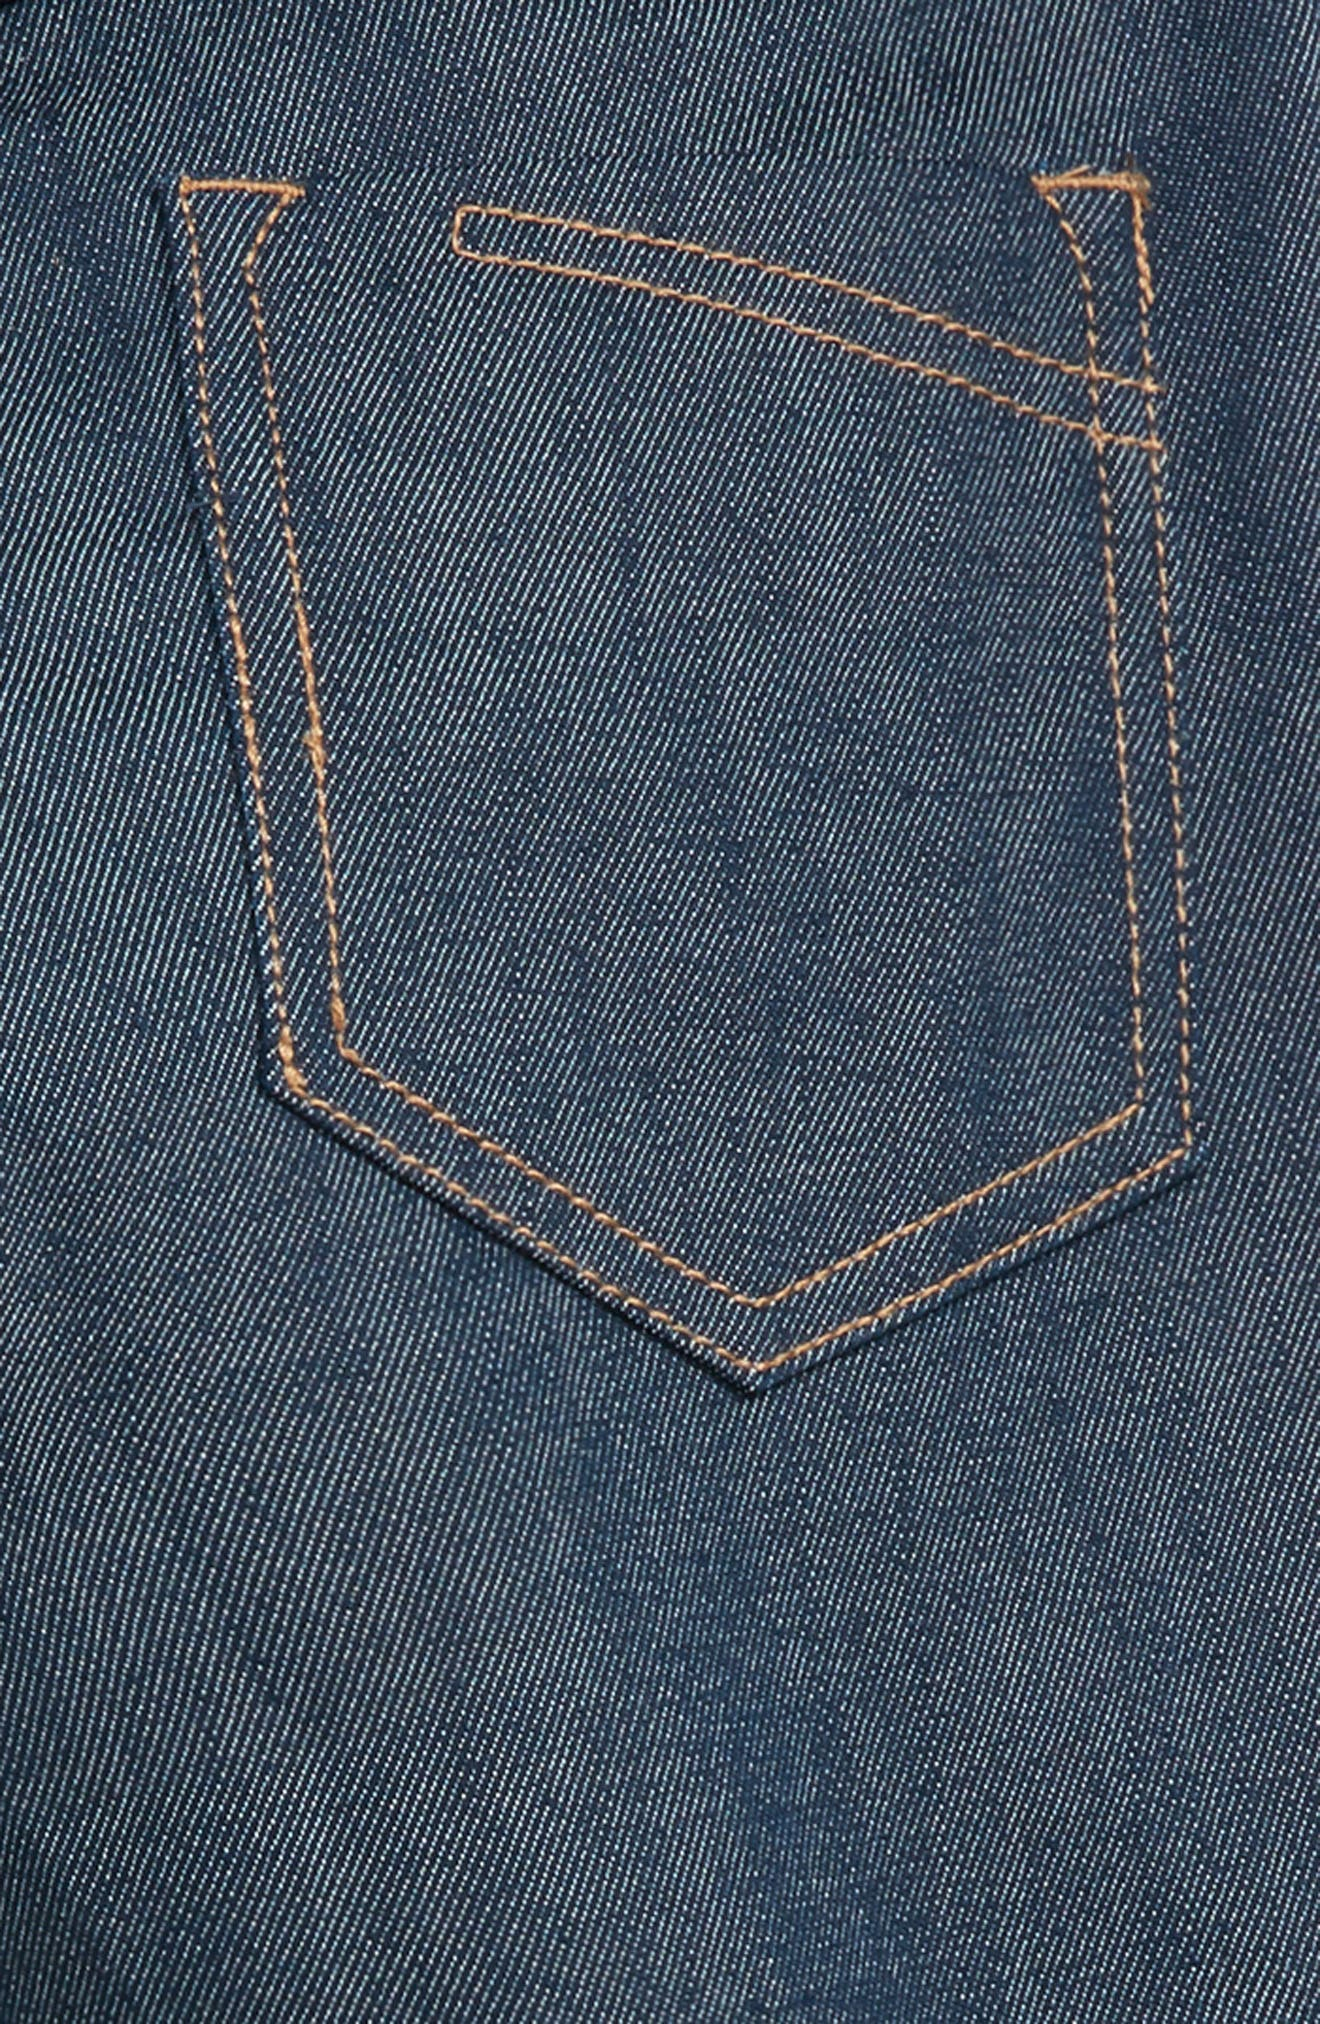 Trick Thermolite<sup>®</sup> Jeans,                             Alternate thumbnail 3, color,                             NAVY